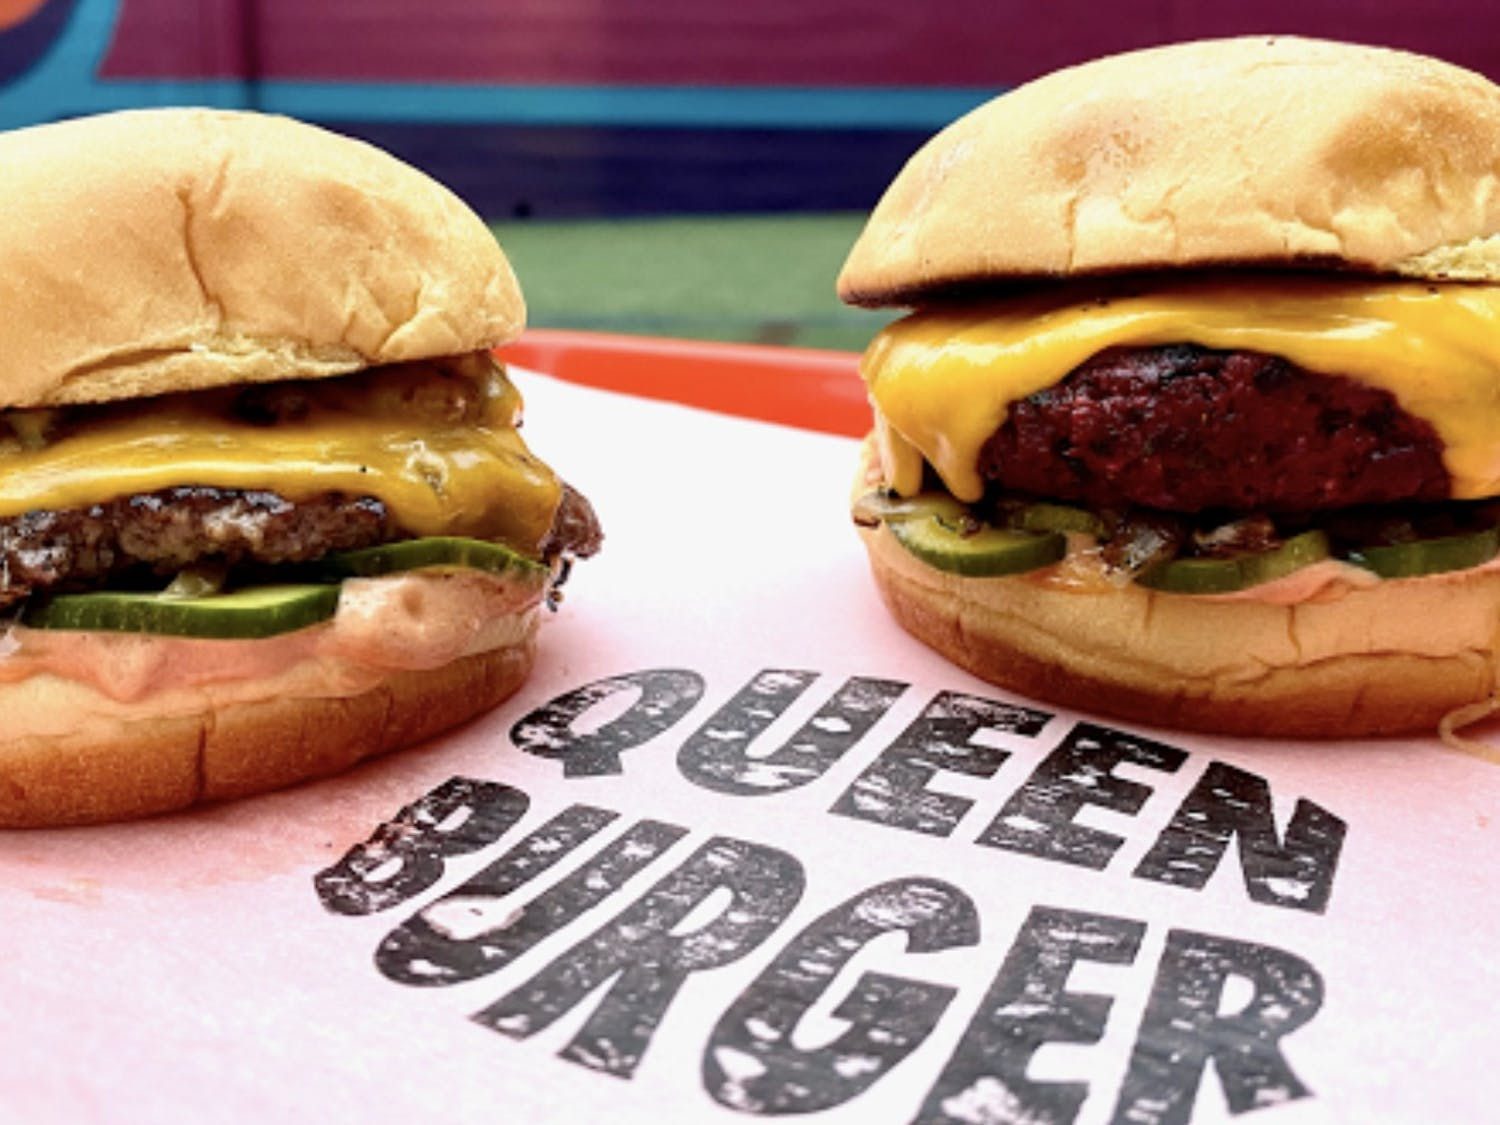 Located on 321 East Chapel Hill Street, Queen Burger hides behind The Durham Hotel.